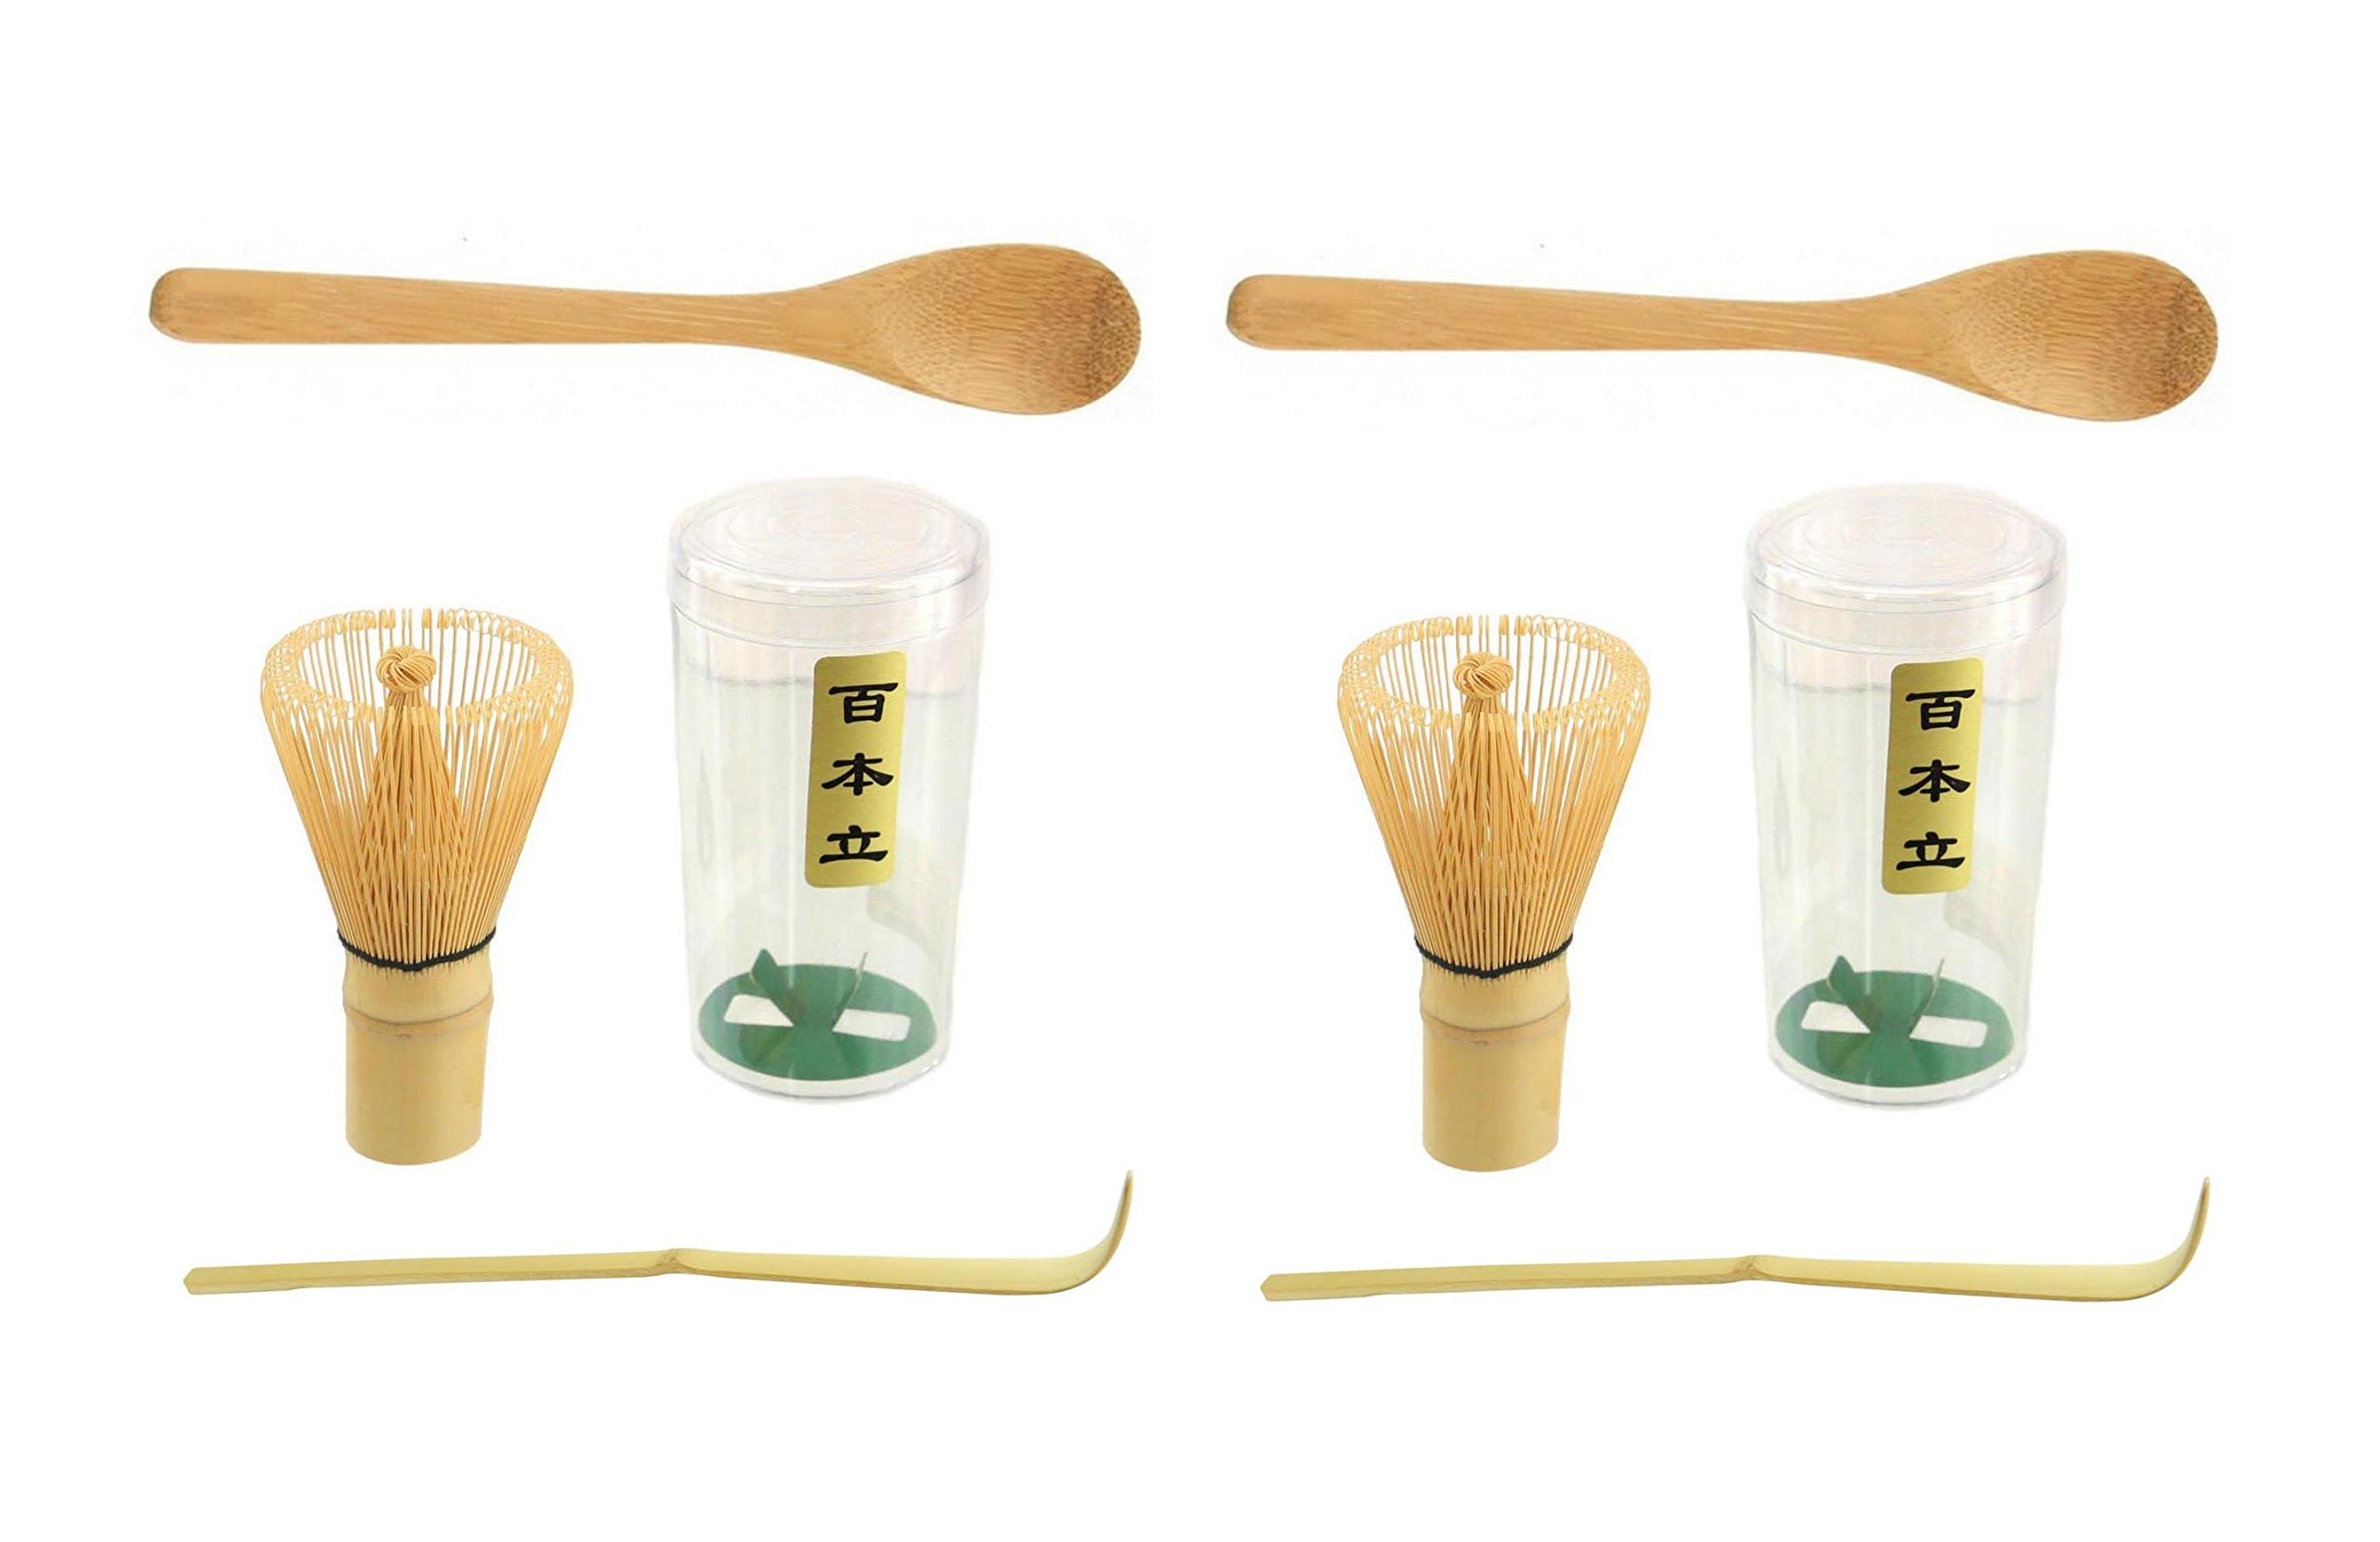 JapanBargain Brand S3702+3805, Bambooo Matcha Tea Ceremony Set 100 Prong Chasen Whisk Tea Scoop Chashaku Tea Spoon, 2 Set